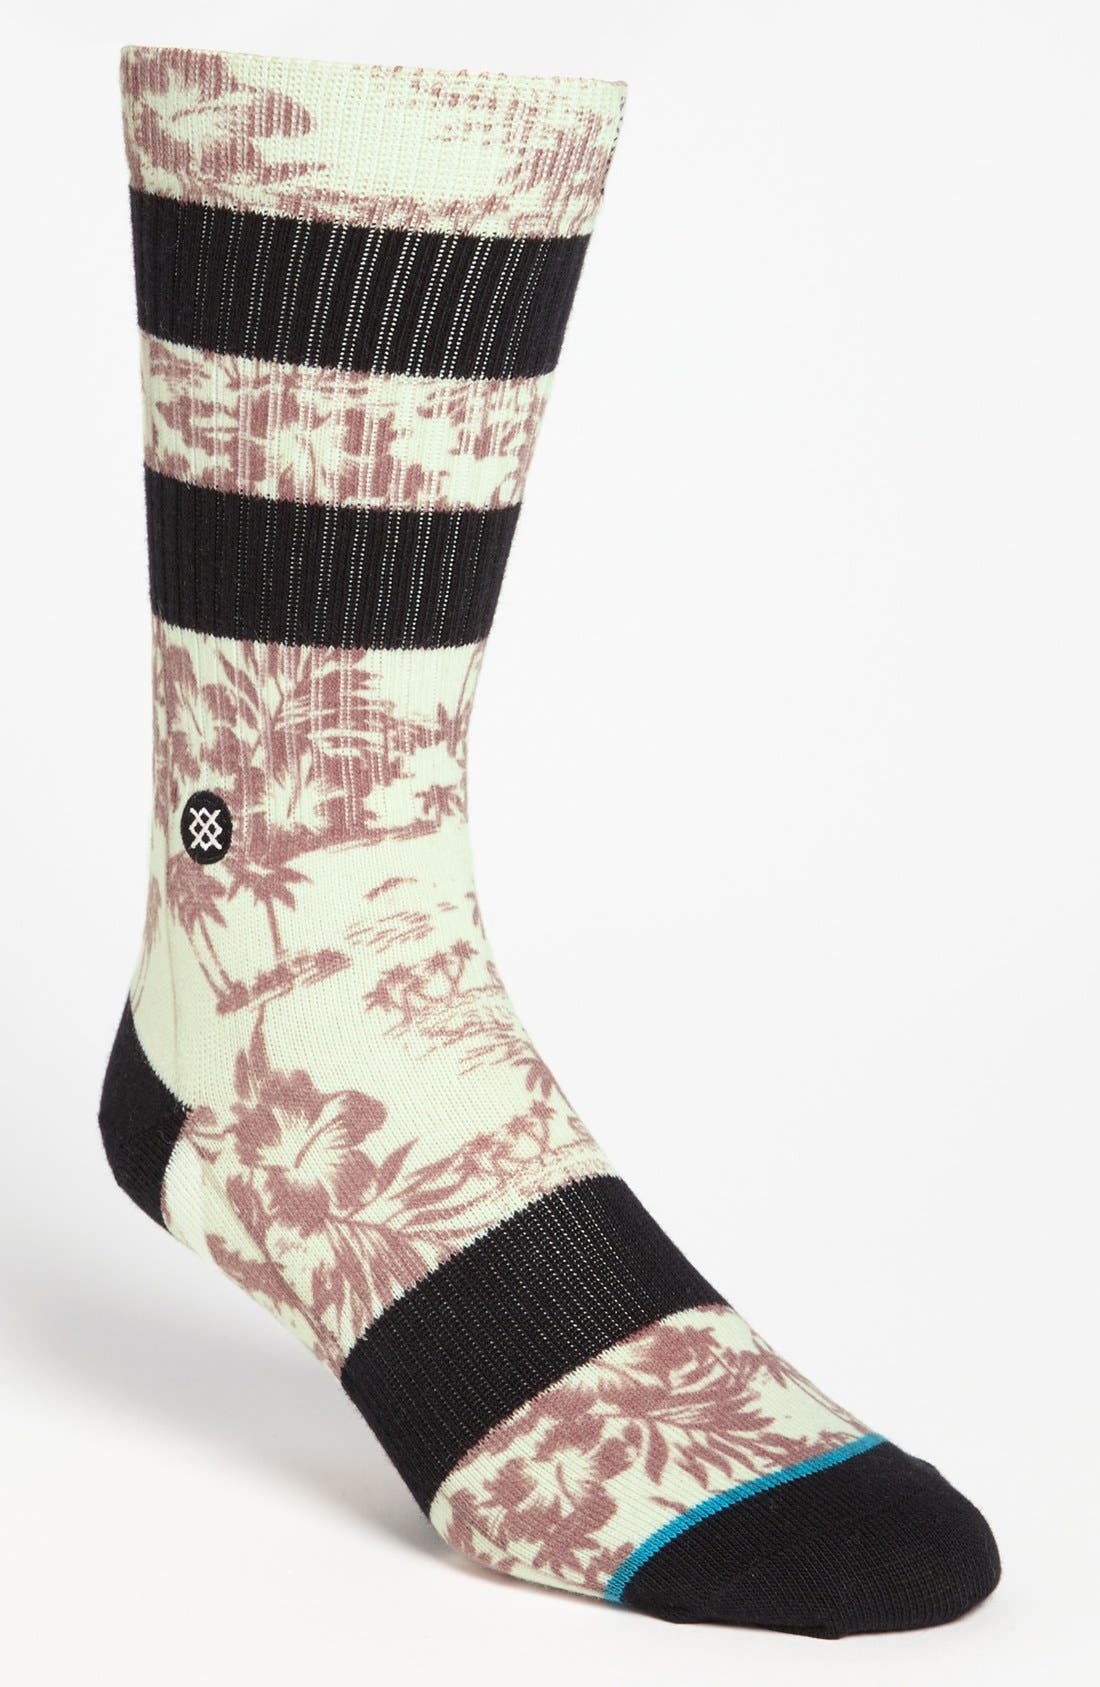 Main Image - Stance 'Waipio' Dress Socks